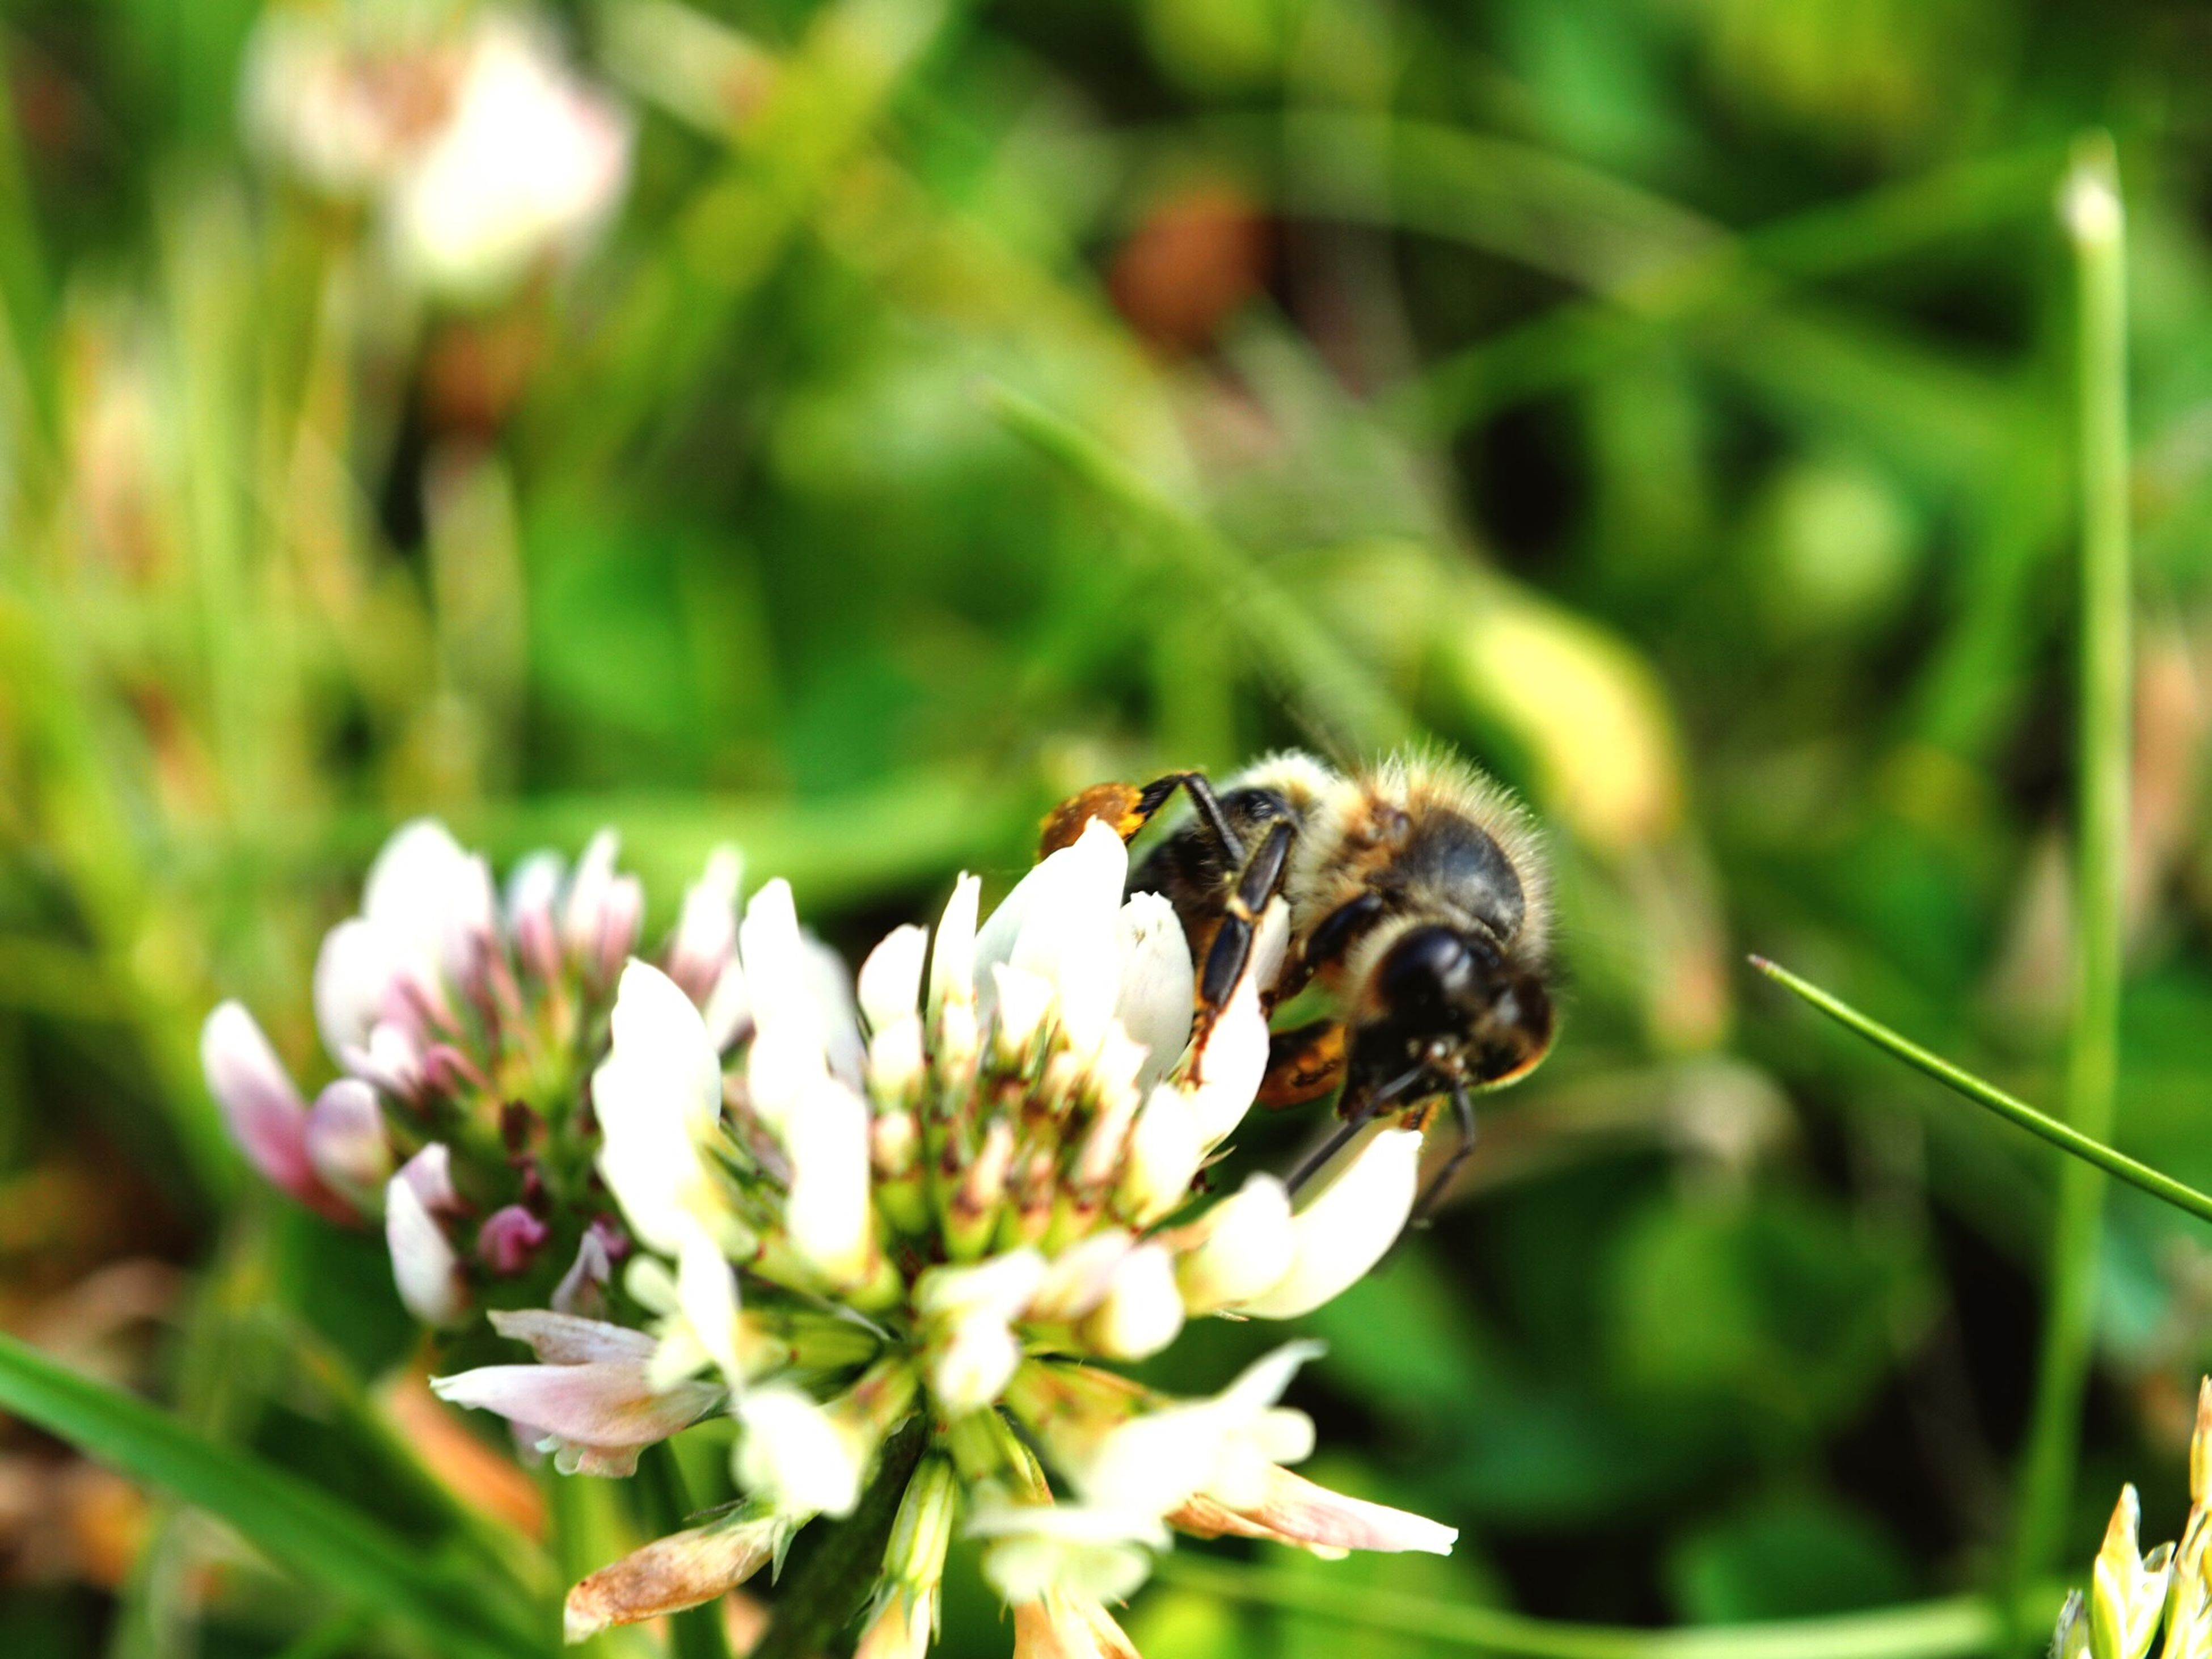 animal themes, flower, one animal, animals in the wild, wildlife, insect, growth, freshness, focus on foreground, fragility, petal, plant, beauty in nature, nature, close-up, flower head, white color, blooming, pollination, bee